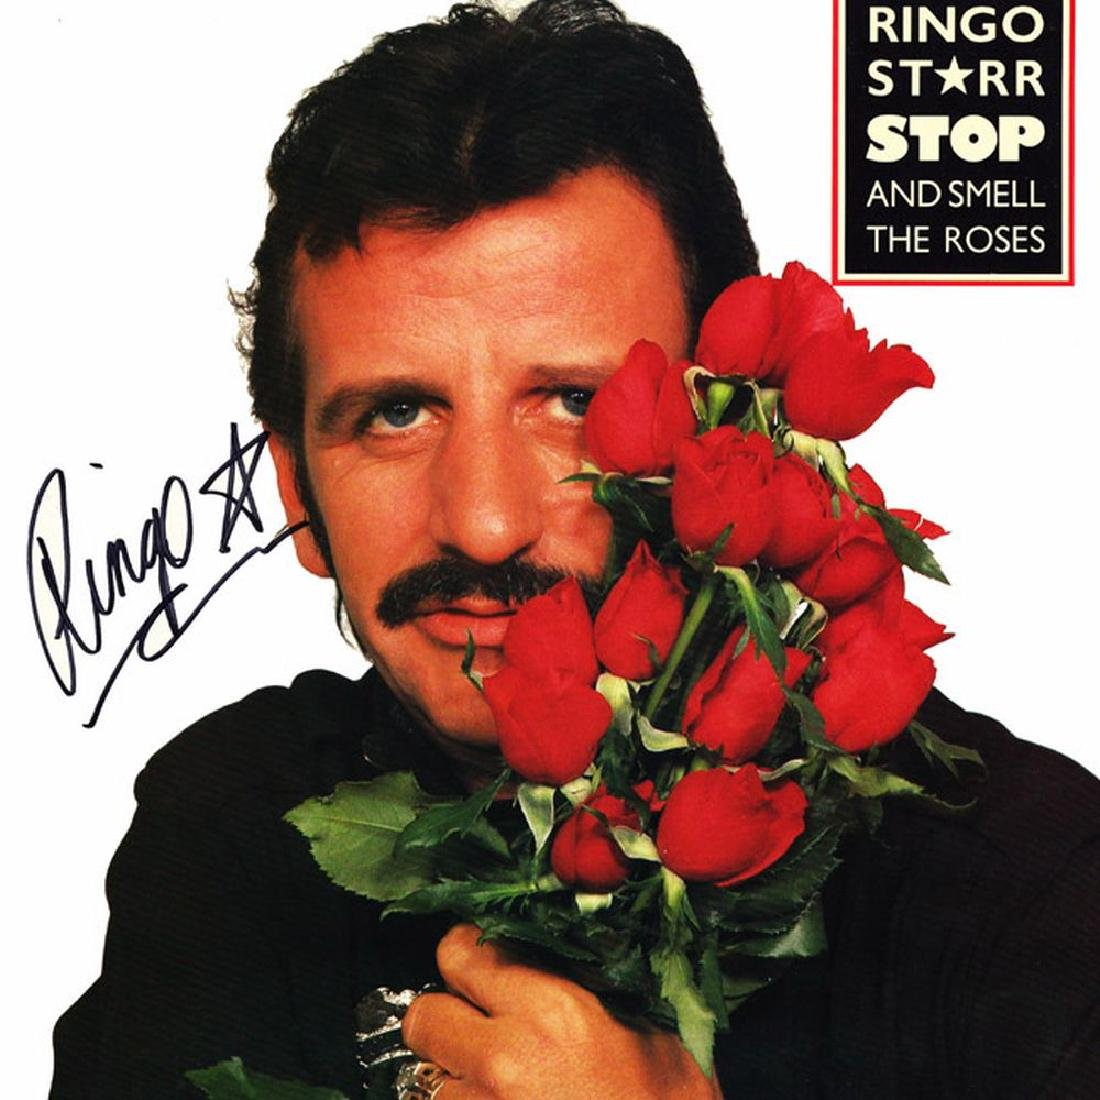 """Ringo Starr """"Stop And Smell The Roses"""""""